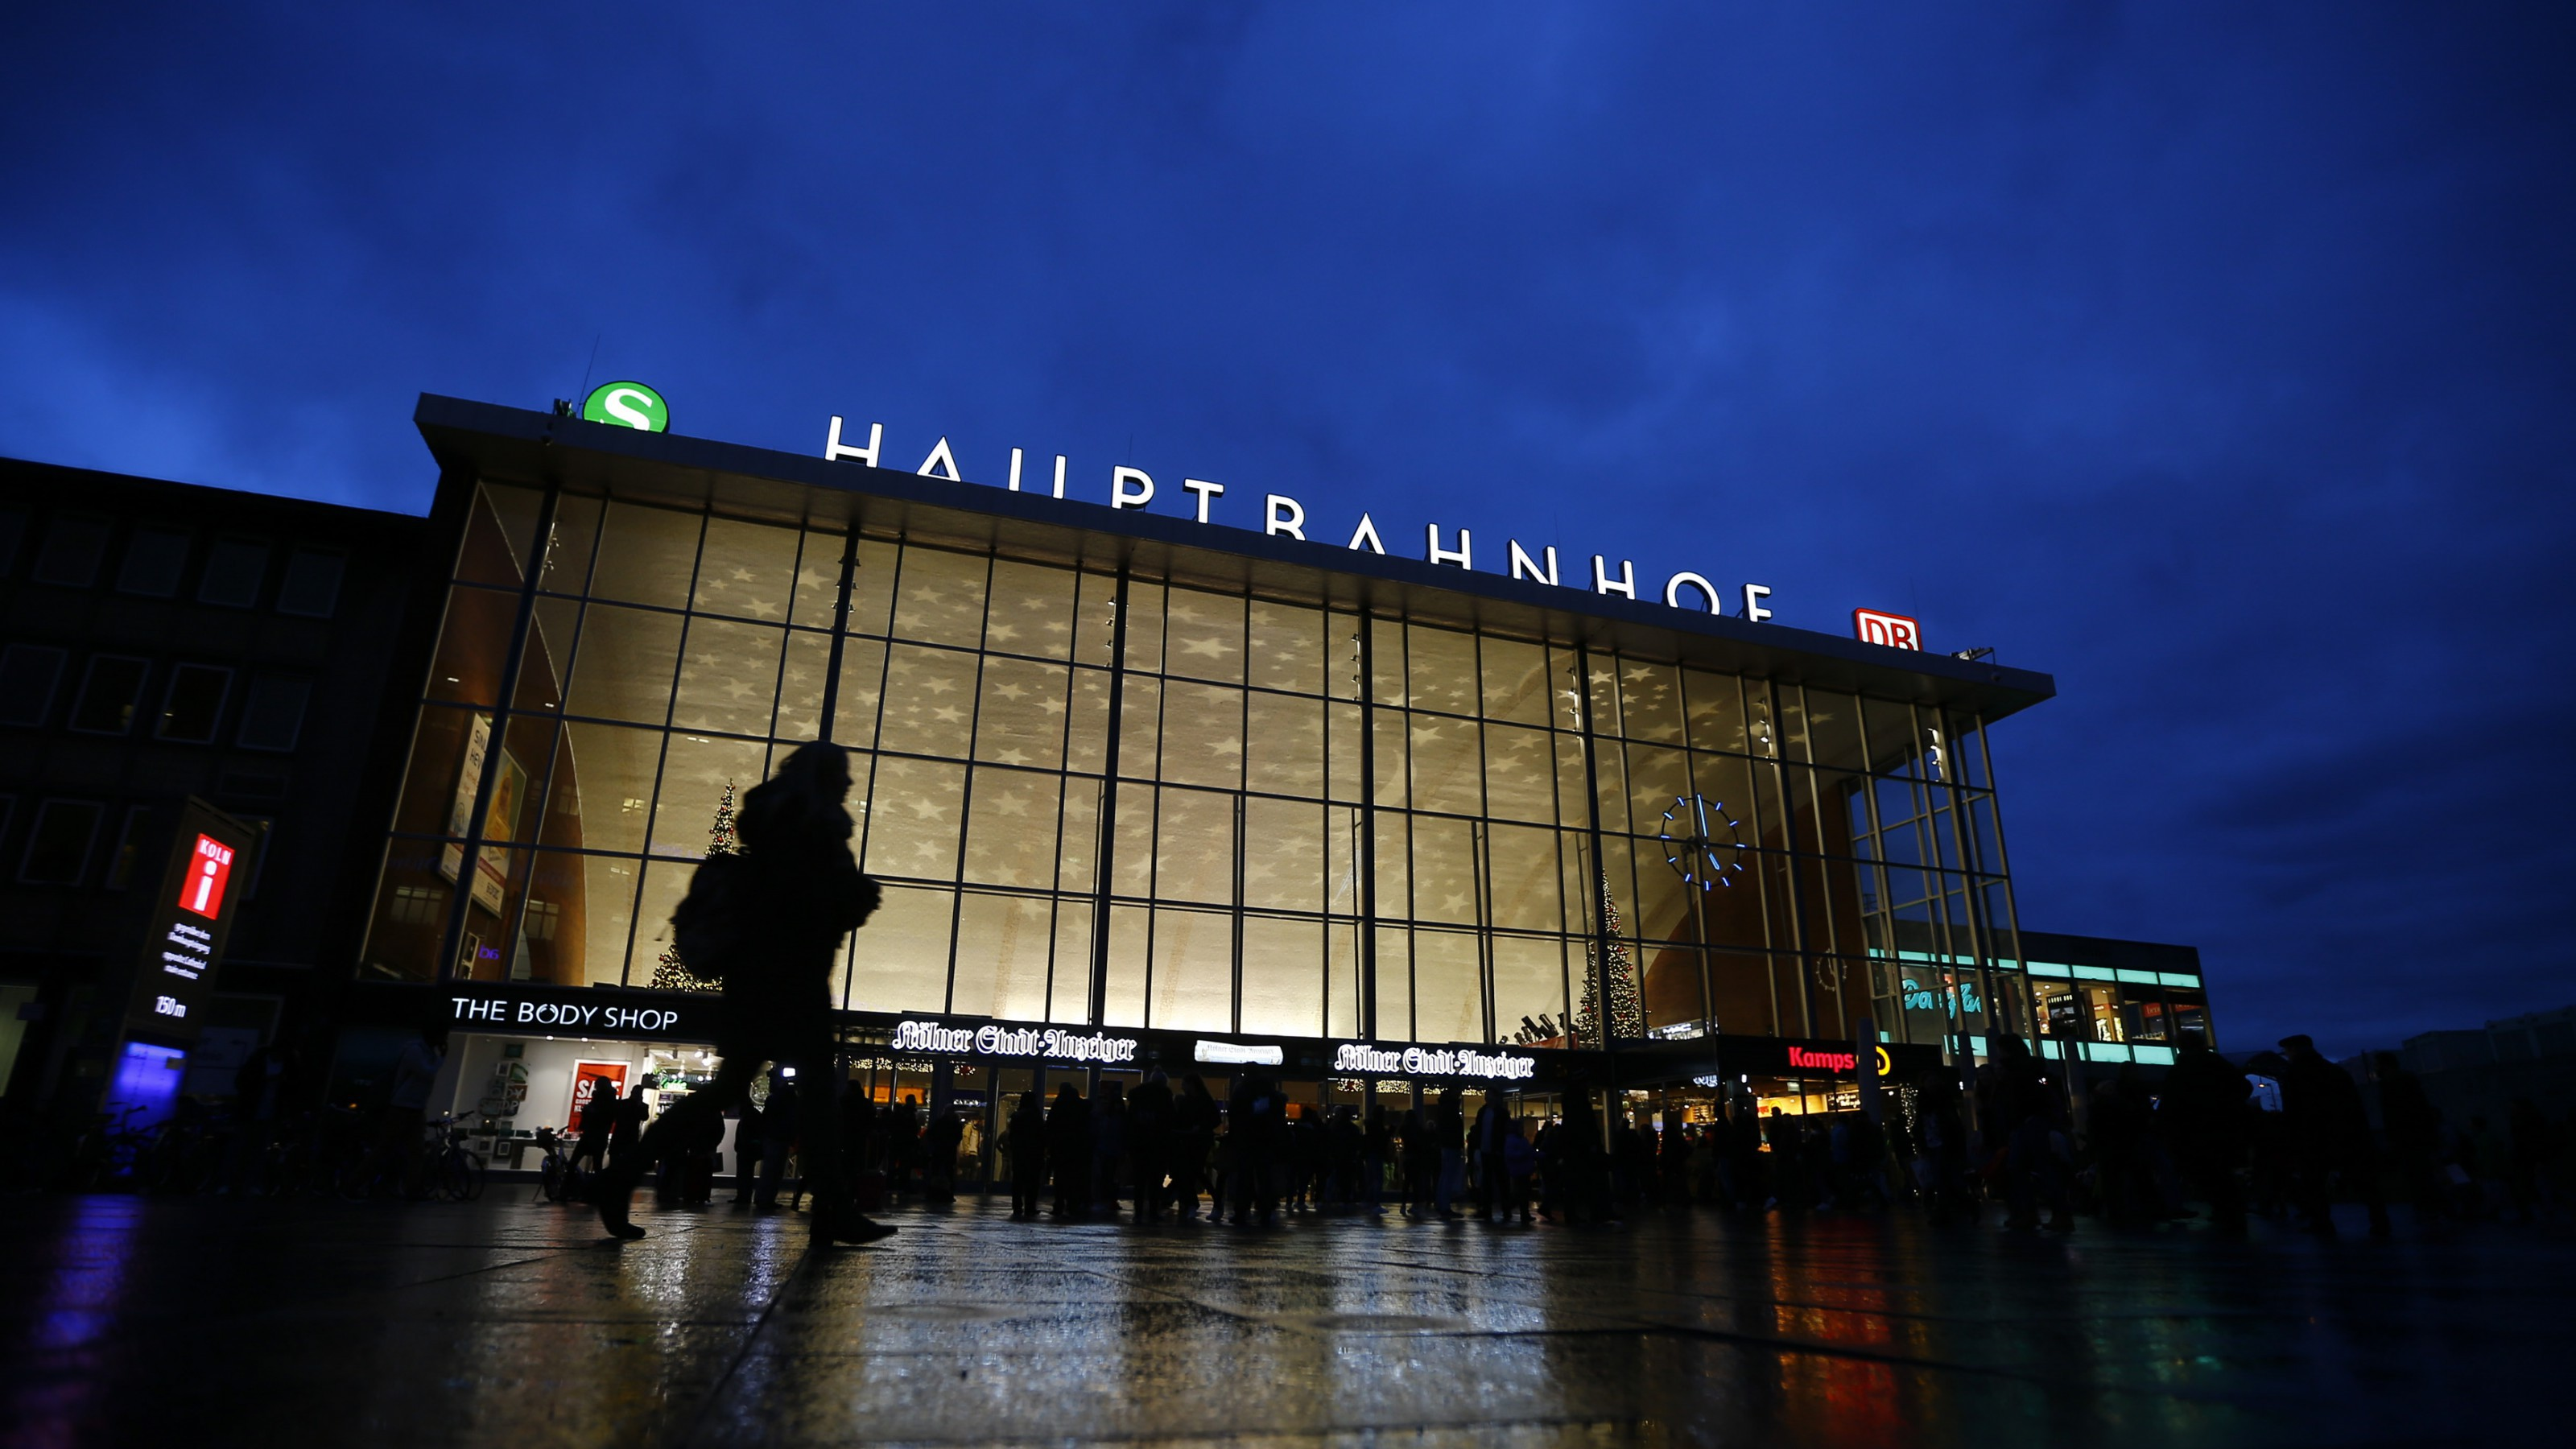 People are silhouetted as they walk past the main railway station in Cologne, Germany, January 5, 2016. About 90 women have reported being robbed, threatened or sexually molested at the New Year's celebrations outside Cologne's cathedral by young, mostly drunk, men, police said on Tuesday. One woman said she was raped. Police and witnesses have said about 1,000 men, split into groups, attacked women in the square. Some witnesses said the men were of North African appearance, stirring strong emotions in Germany where Chancellor Angela Merkel has welcomed people fleeing war zones in the Middle East and Africa.   REUTERS/Wolfgang Rattay  - RTX214SE